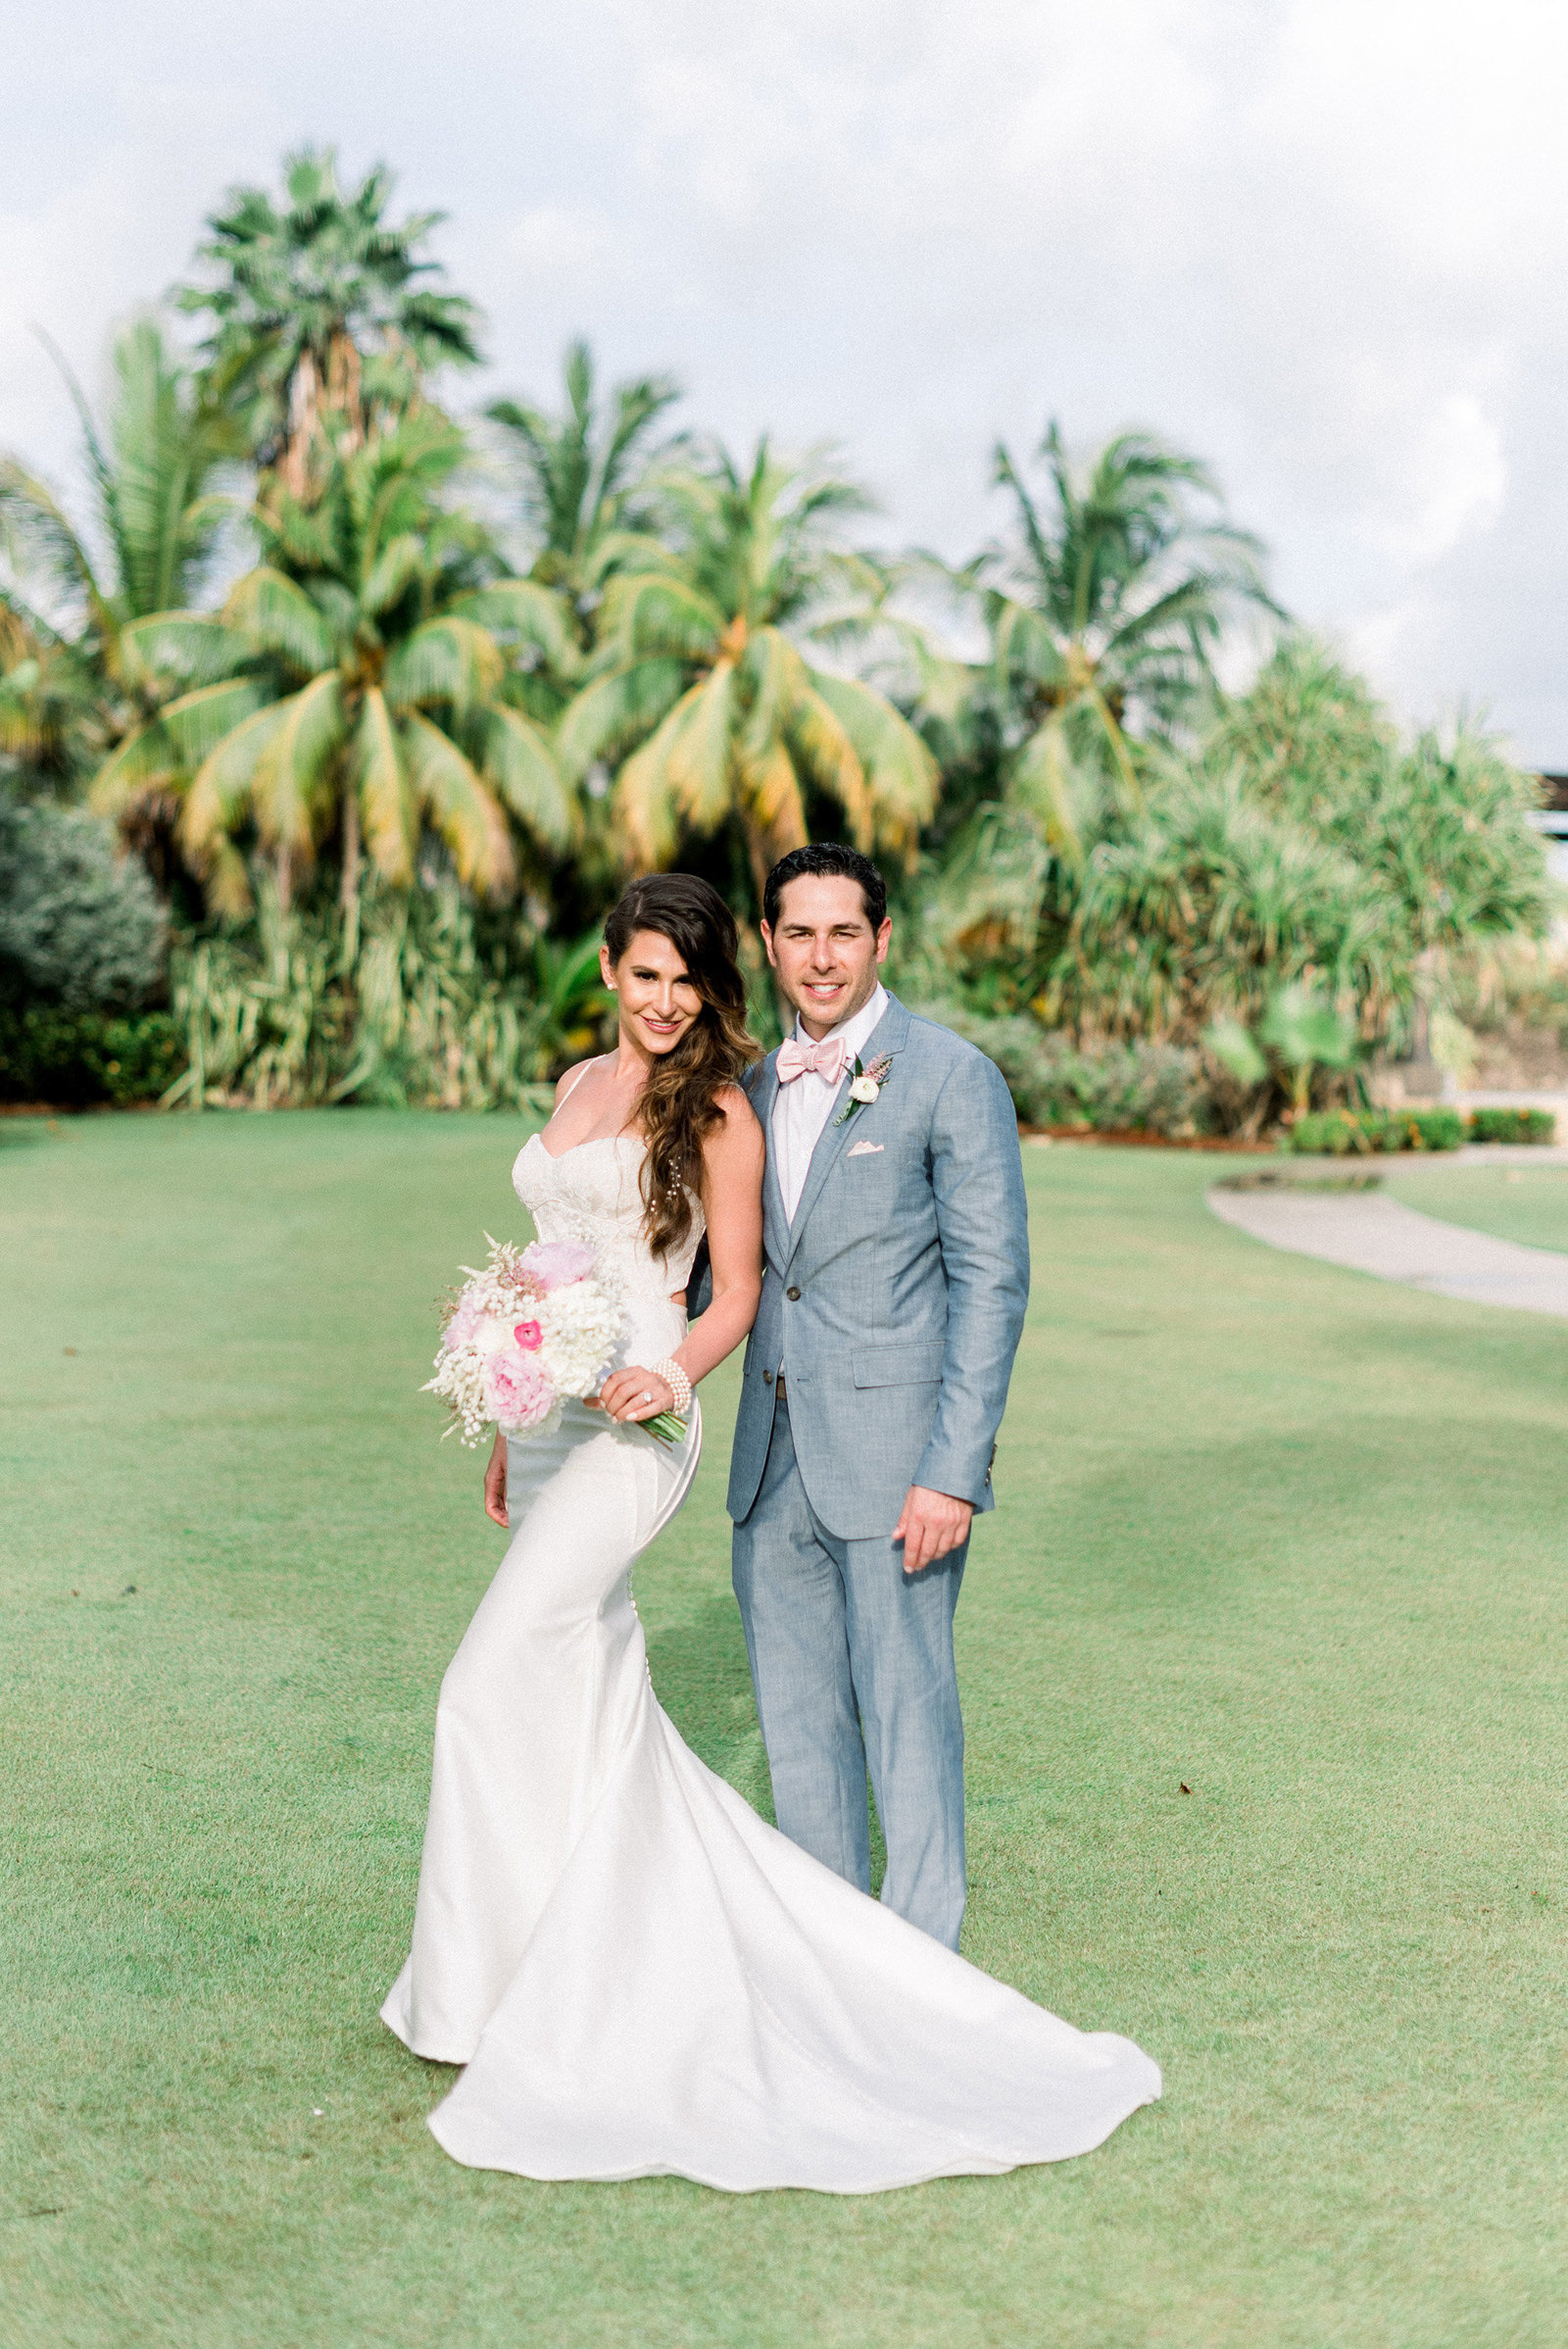 20180512-Pura-Soul-Photo-Ritz-Grand-Cayman-Wedding-66